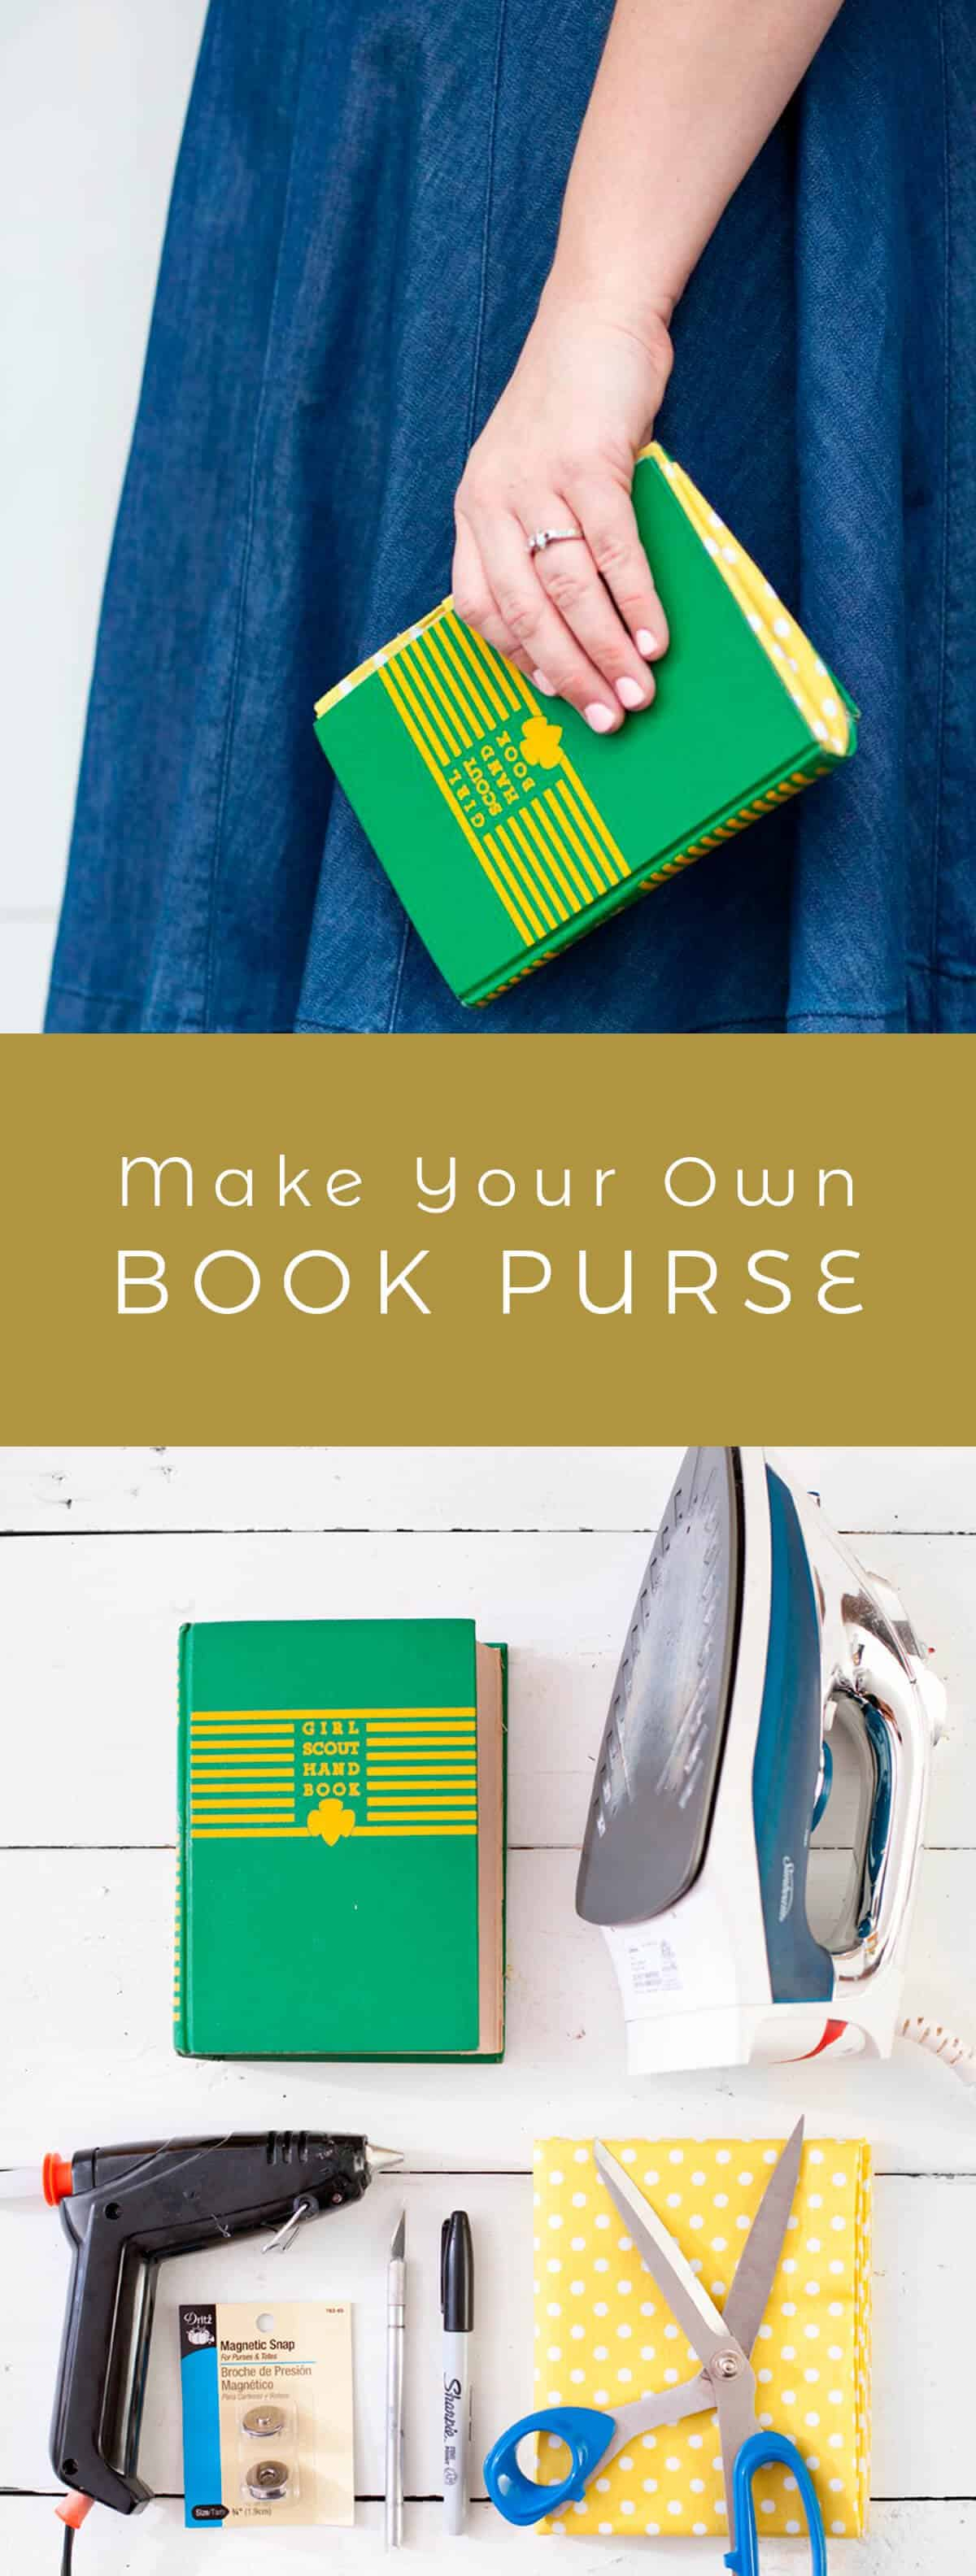 Turn an old book into a new purse a beautiful mess share on pinterest share on facebook share on twitter share by email solutioingenieria Choice Image